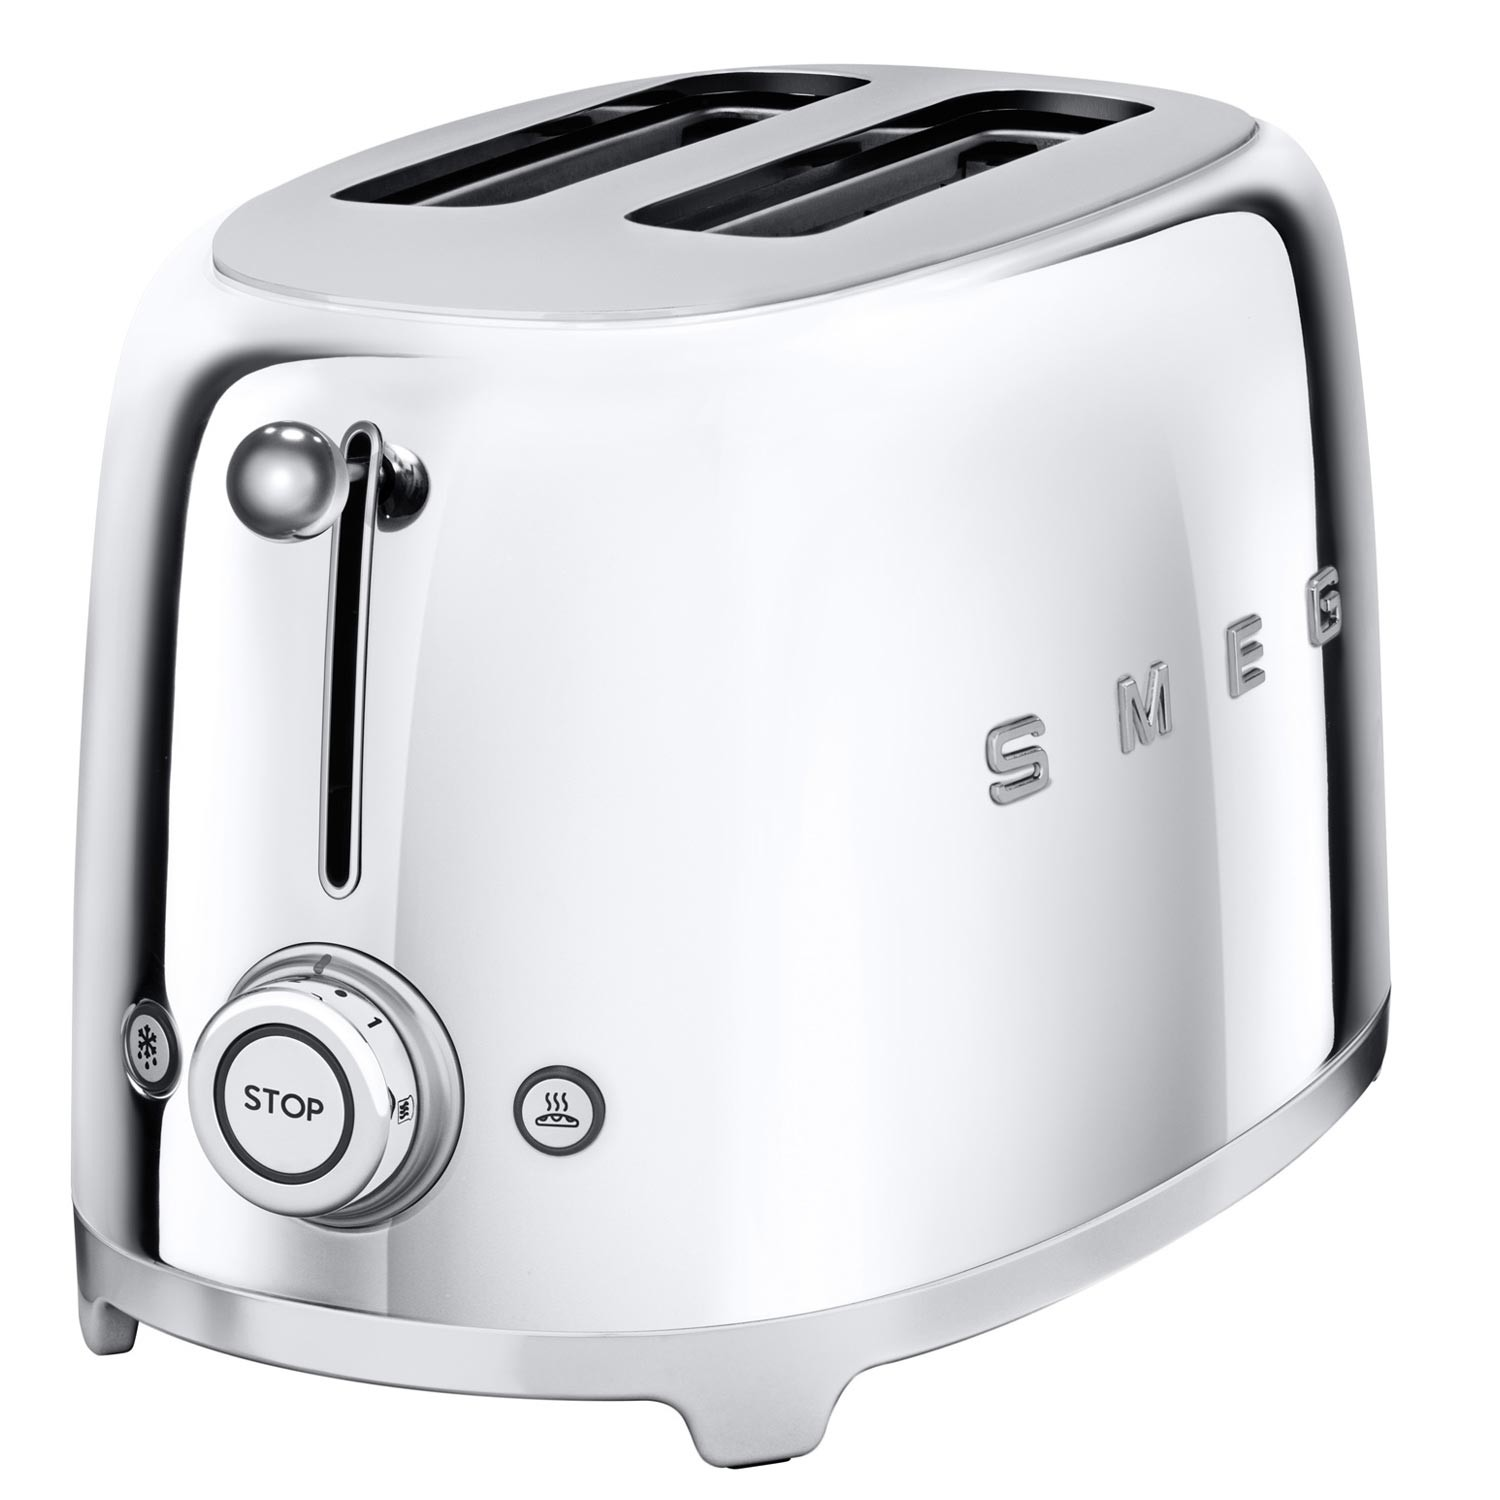 2 Slice Toaster Cream Chrome: Smeg Kettle & 2 Slice Toaster Set, Chrome